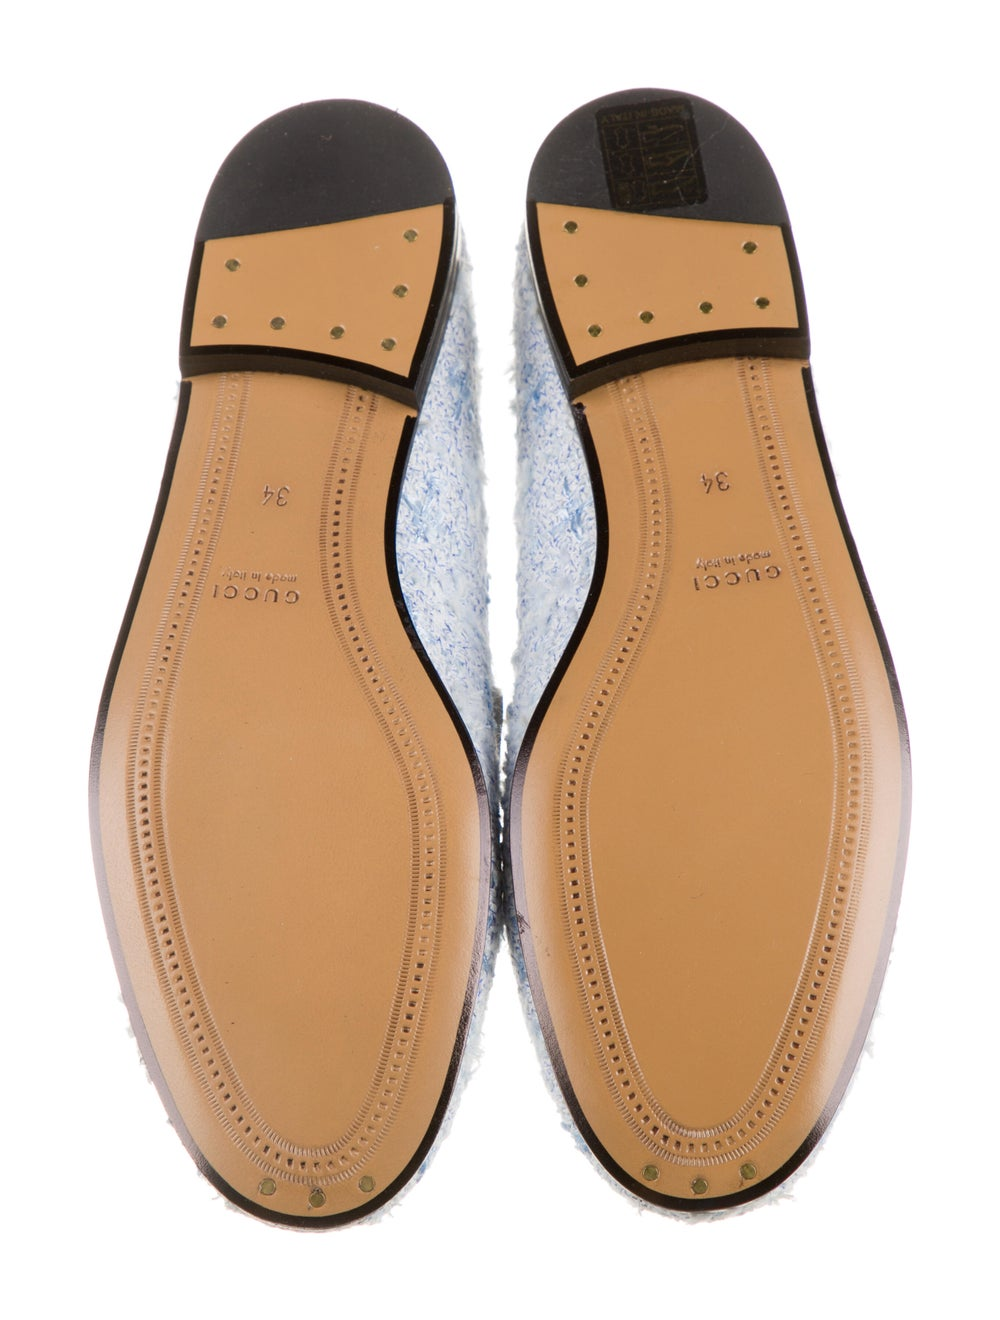 Gucci Horsebit Accent Tweed Pattern Loafers w/ Ta… - image 5